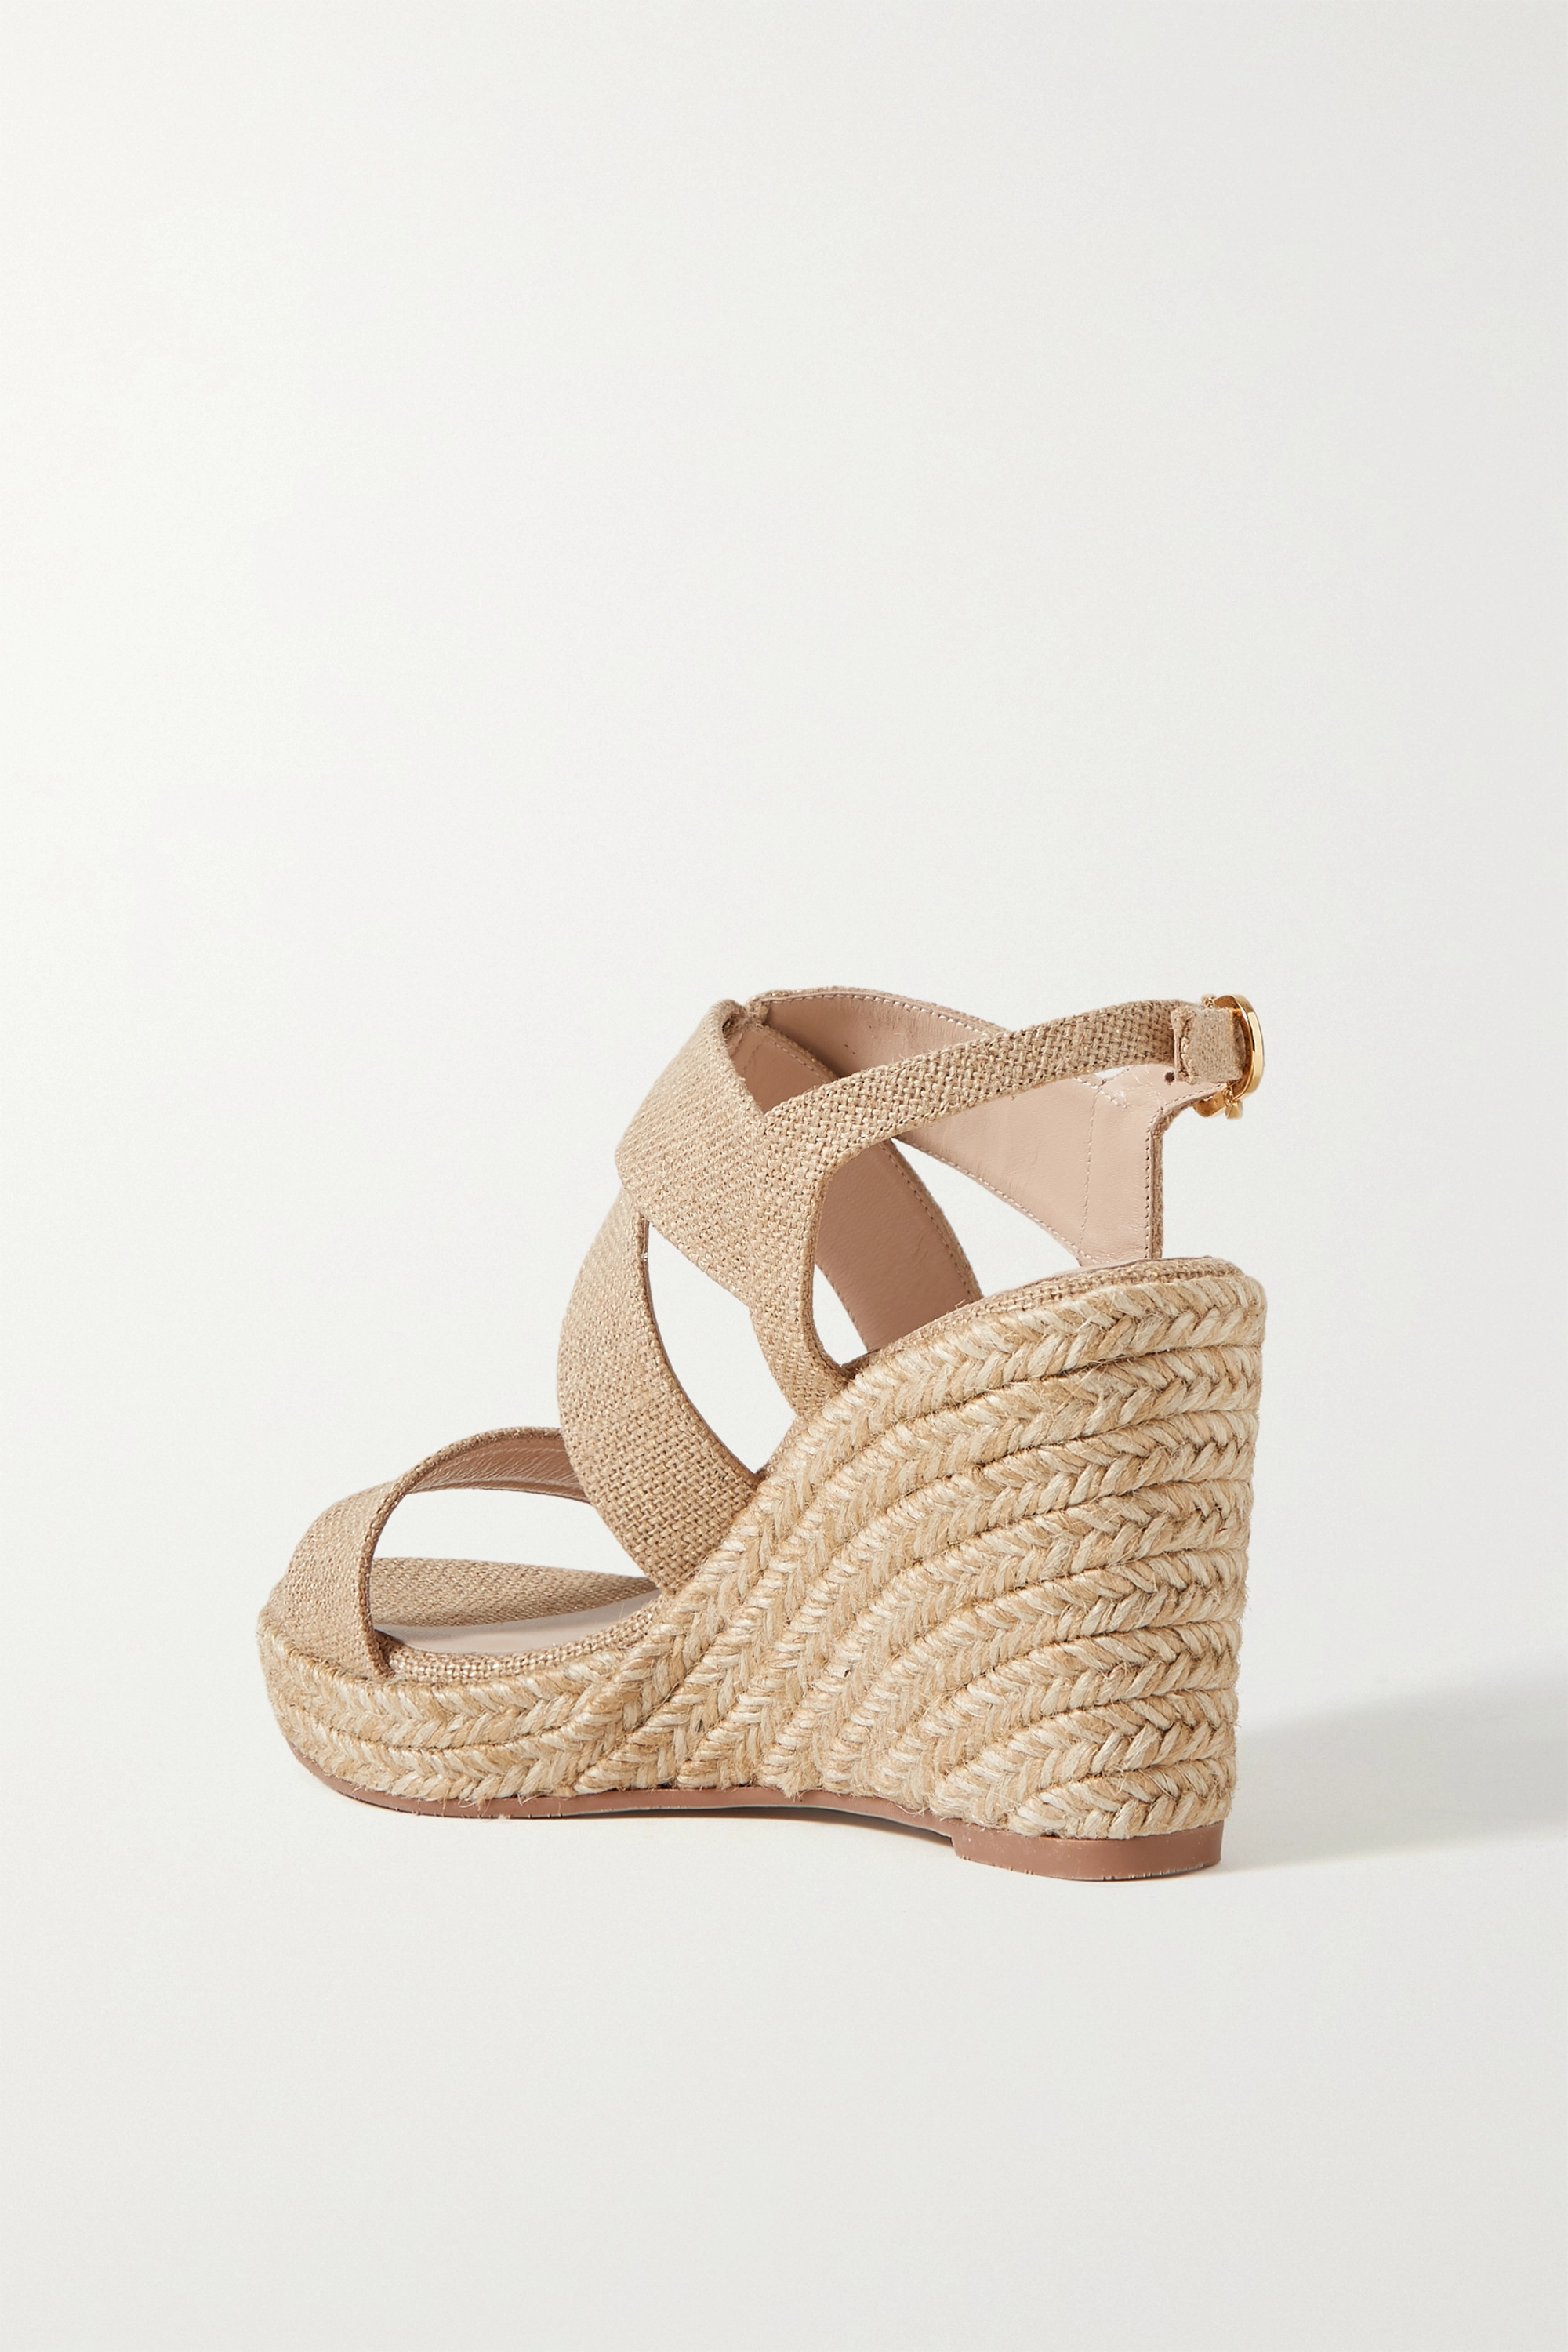 Stuart Weitzman Ellette metallic canvas espadrille wedge sandals